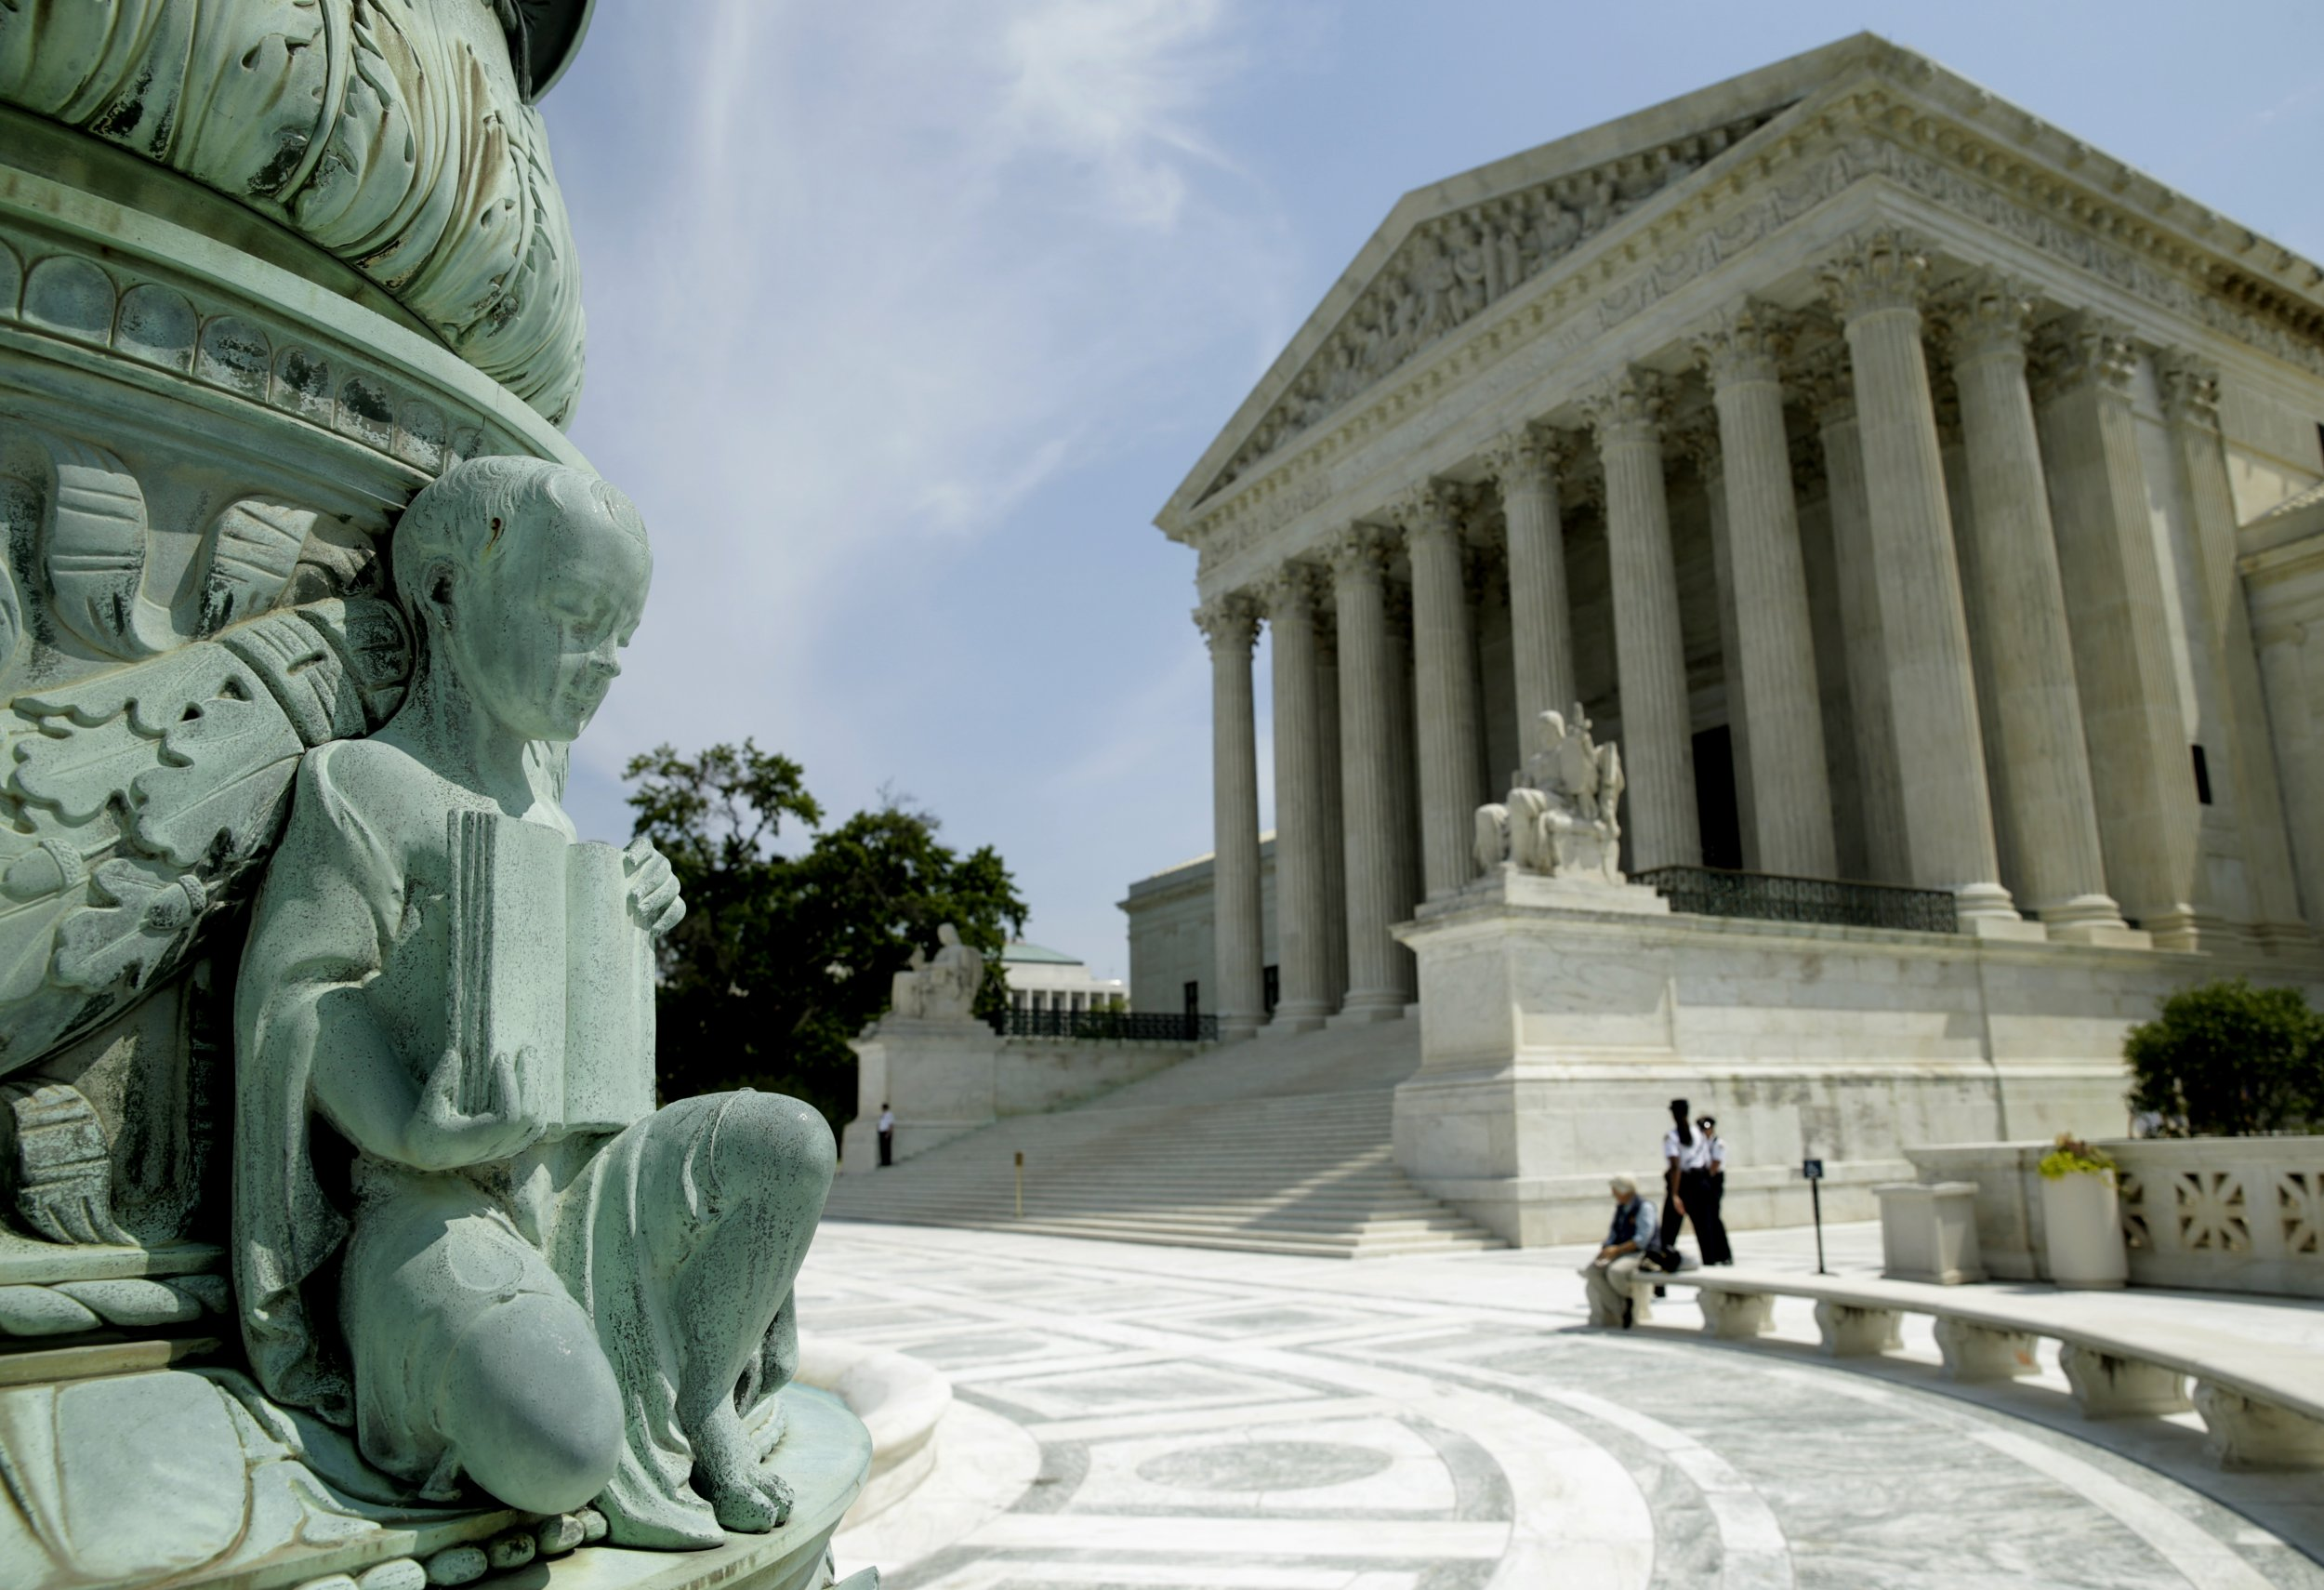 06_25_SupremeCourt_01